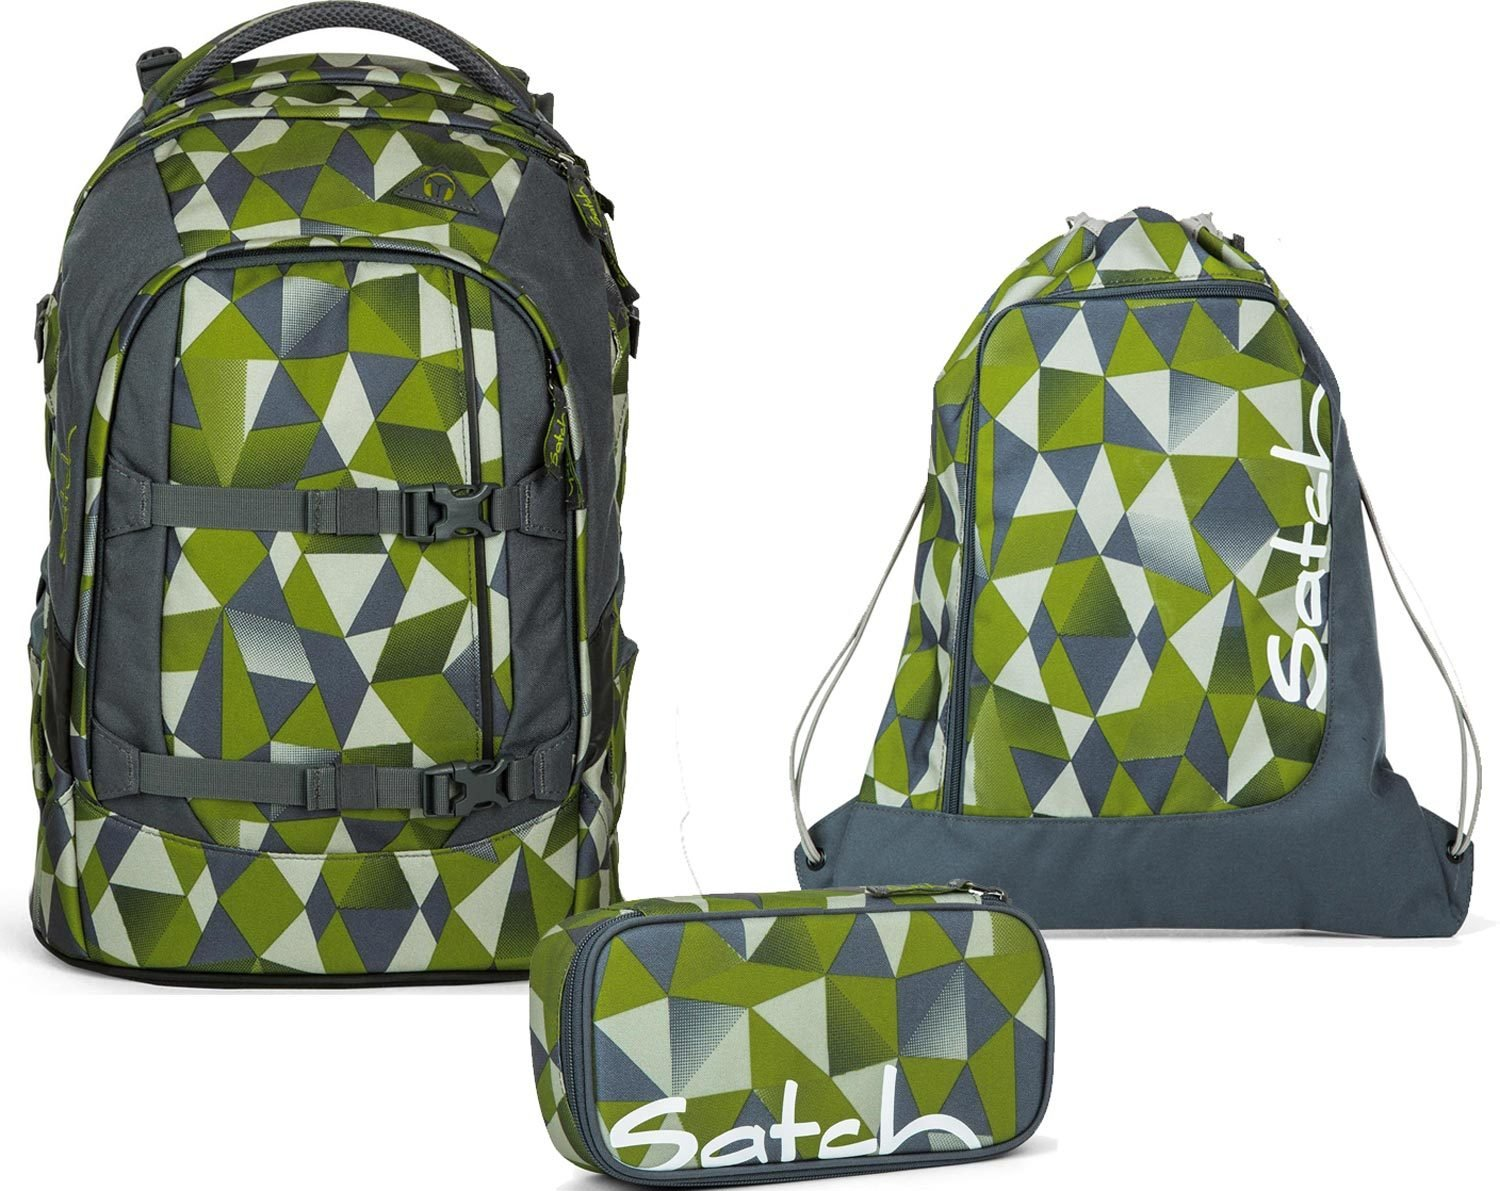 6f3b29fbeba1f Ergobag School Rucksack Set 3 Pieces Pack - Green Crush 9L1 Green Crush   Amazon.co.uk  Office Products